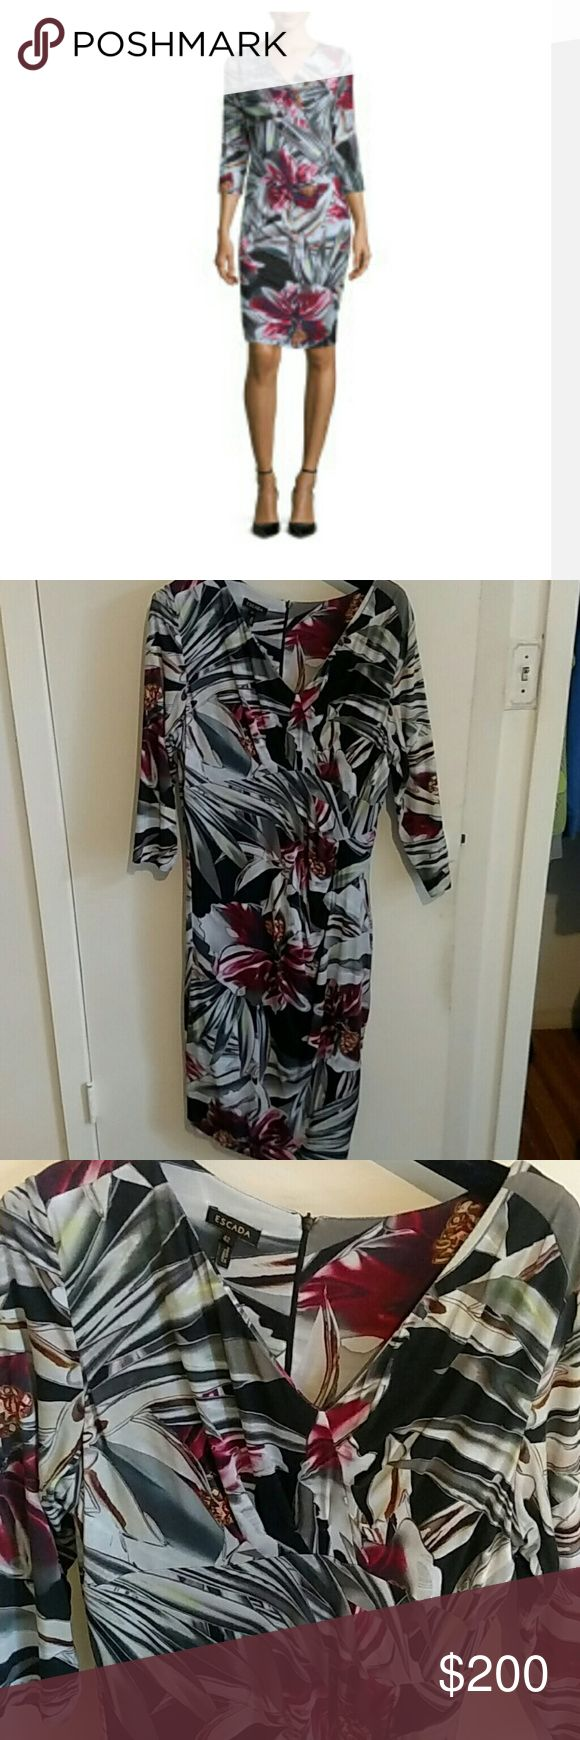 Escada dress Lovely Escada sheath dress 3/4 length.   Authentic.   US Size large  Bust.   40-41.5 inches Waist. 32-33.5 inches Hips    41.5-42. 5 inches German 42 US size 12. UK size 16. Fr size 44 IT size 48 Escada Dresses